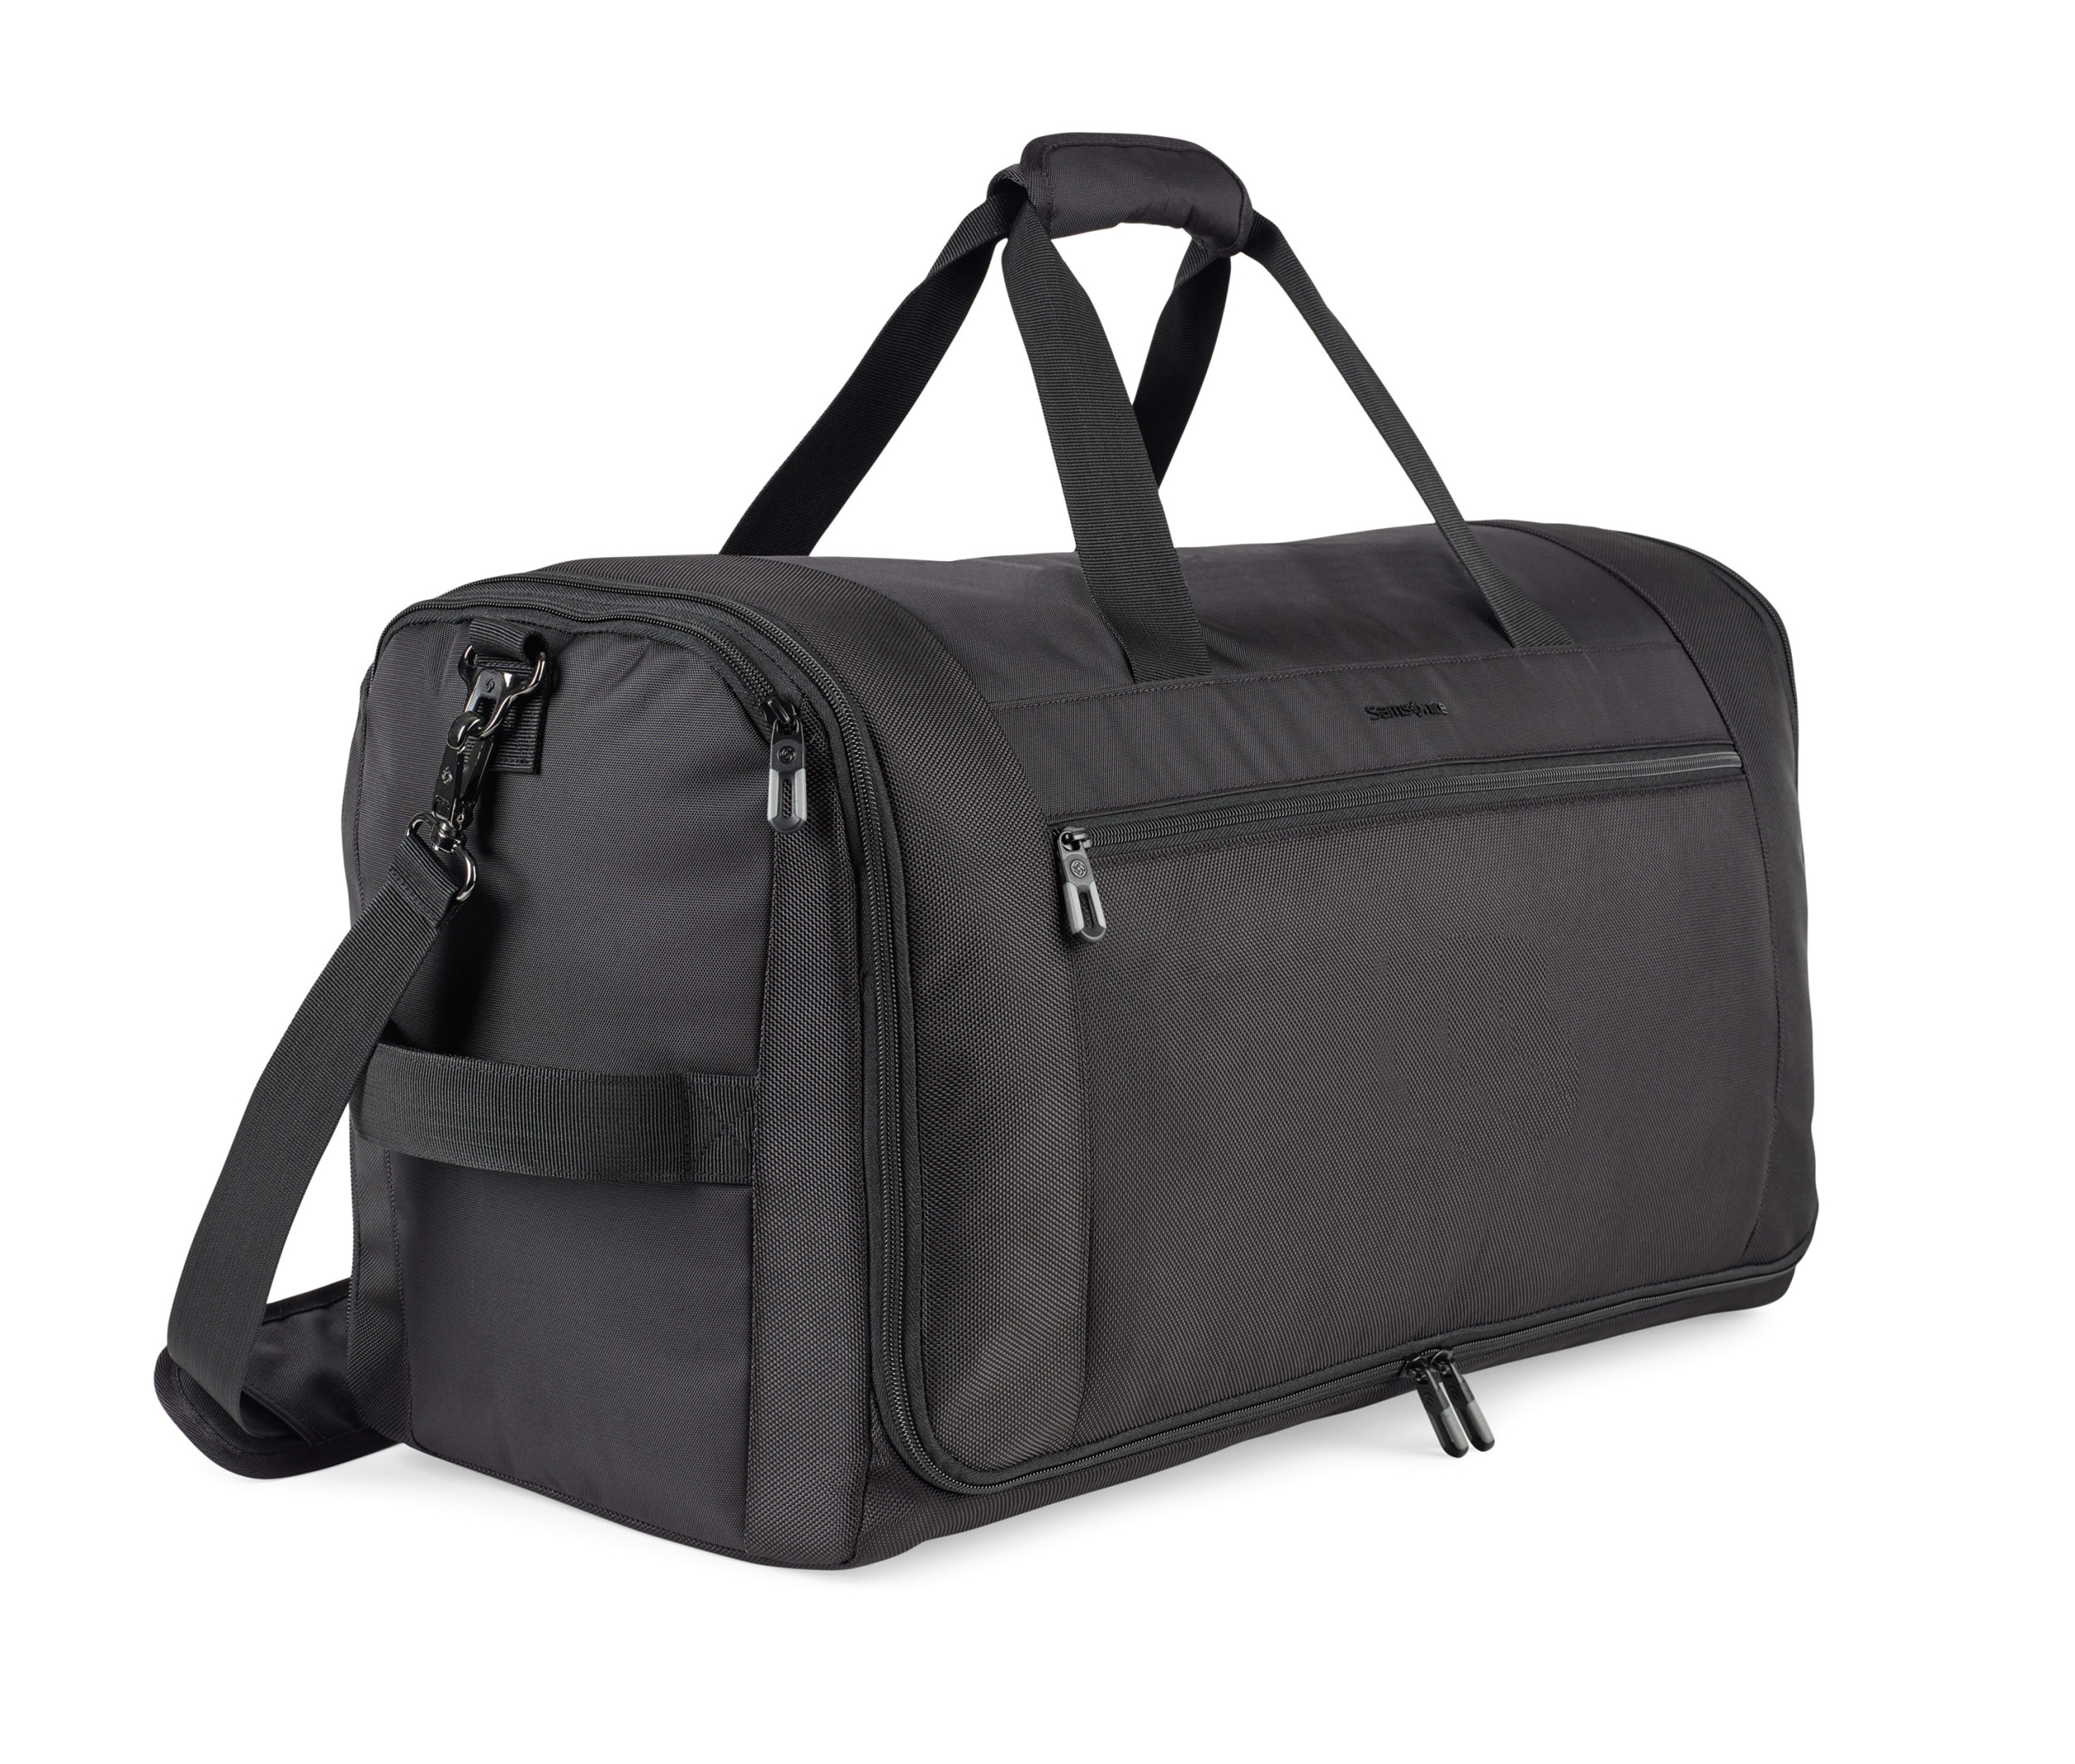 Samsonite 95082 - Corporate Warrior Garment Duffel